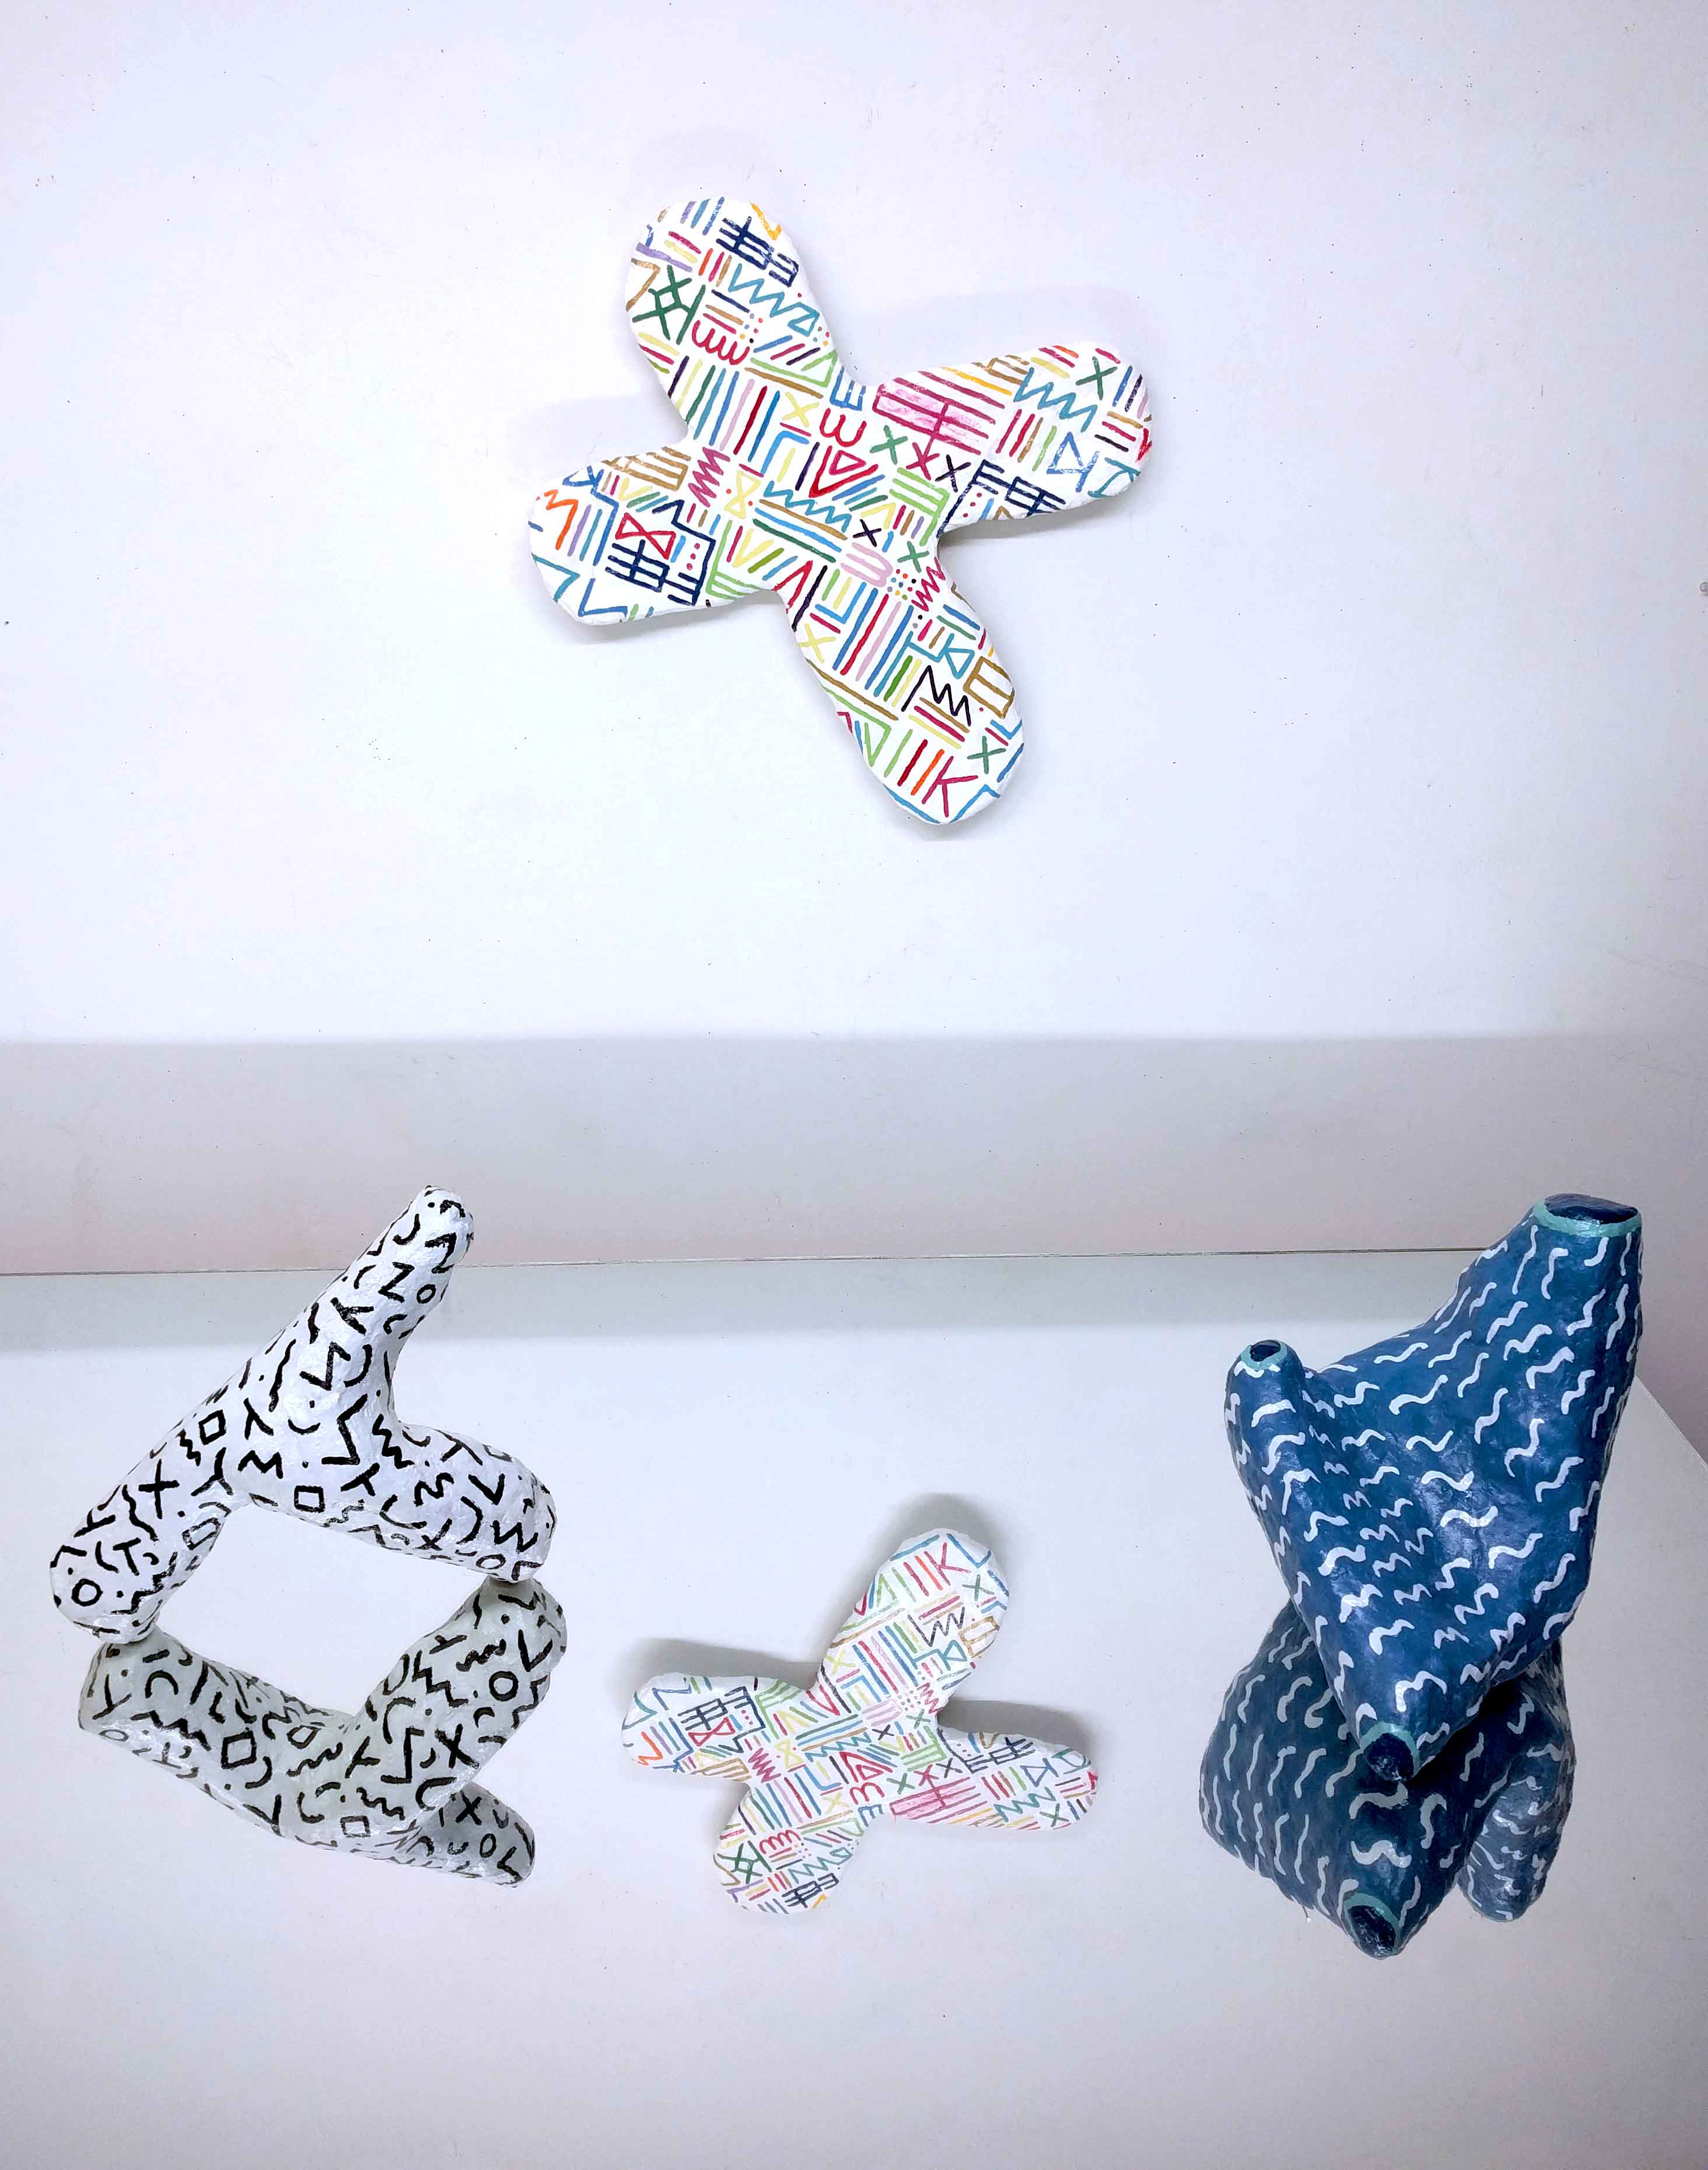 A group of three hydrocal sculptures with thin lines. Two are on a mirror and one is on the wall behind them.